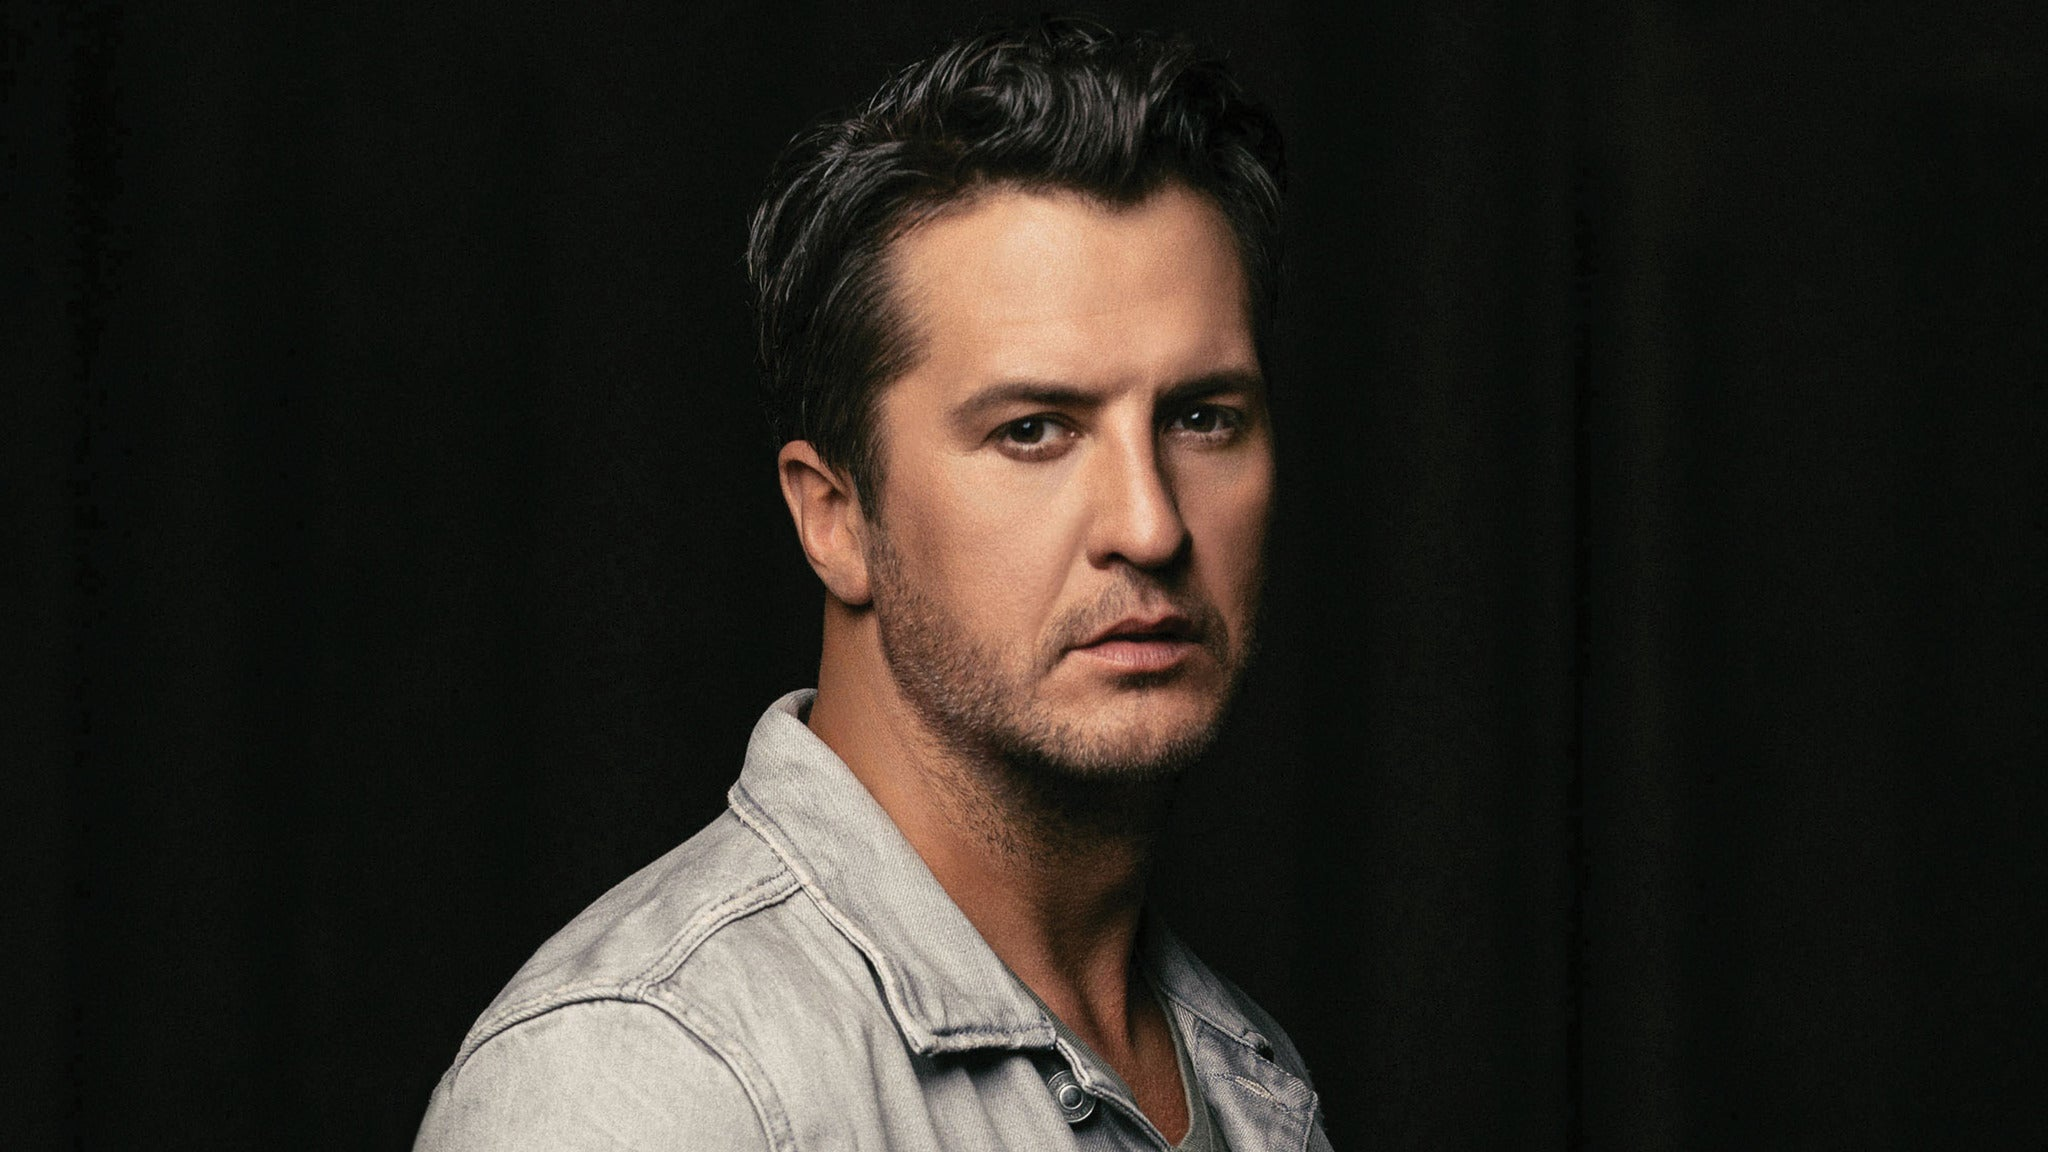 Luke Bryan: Proud To Be Right Here 2021